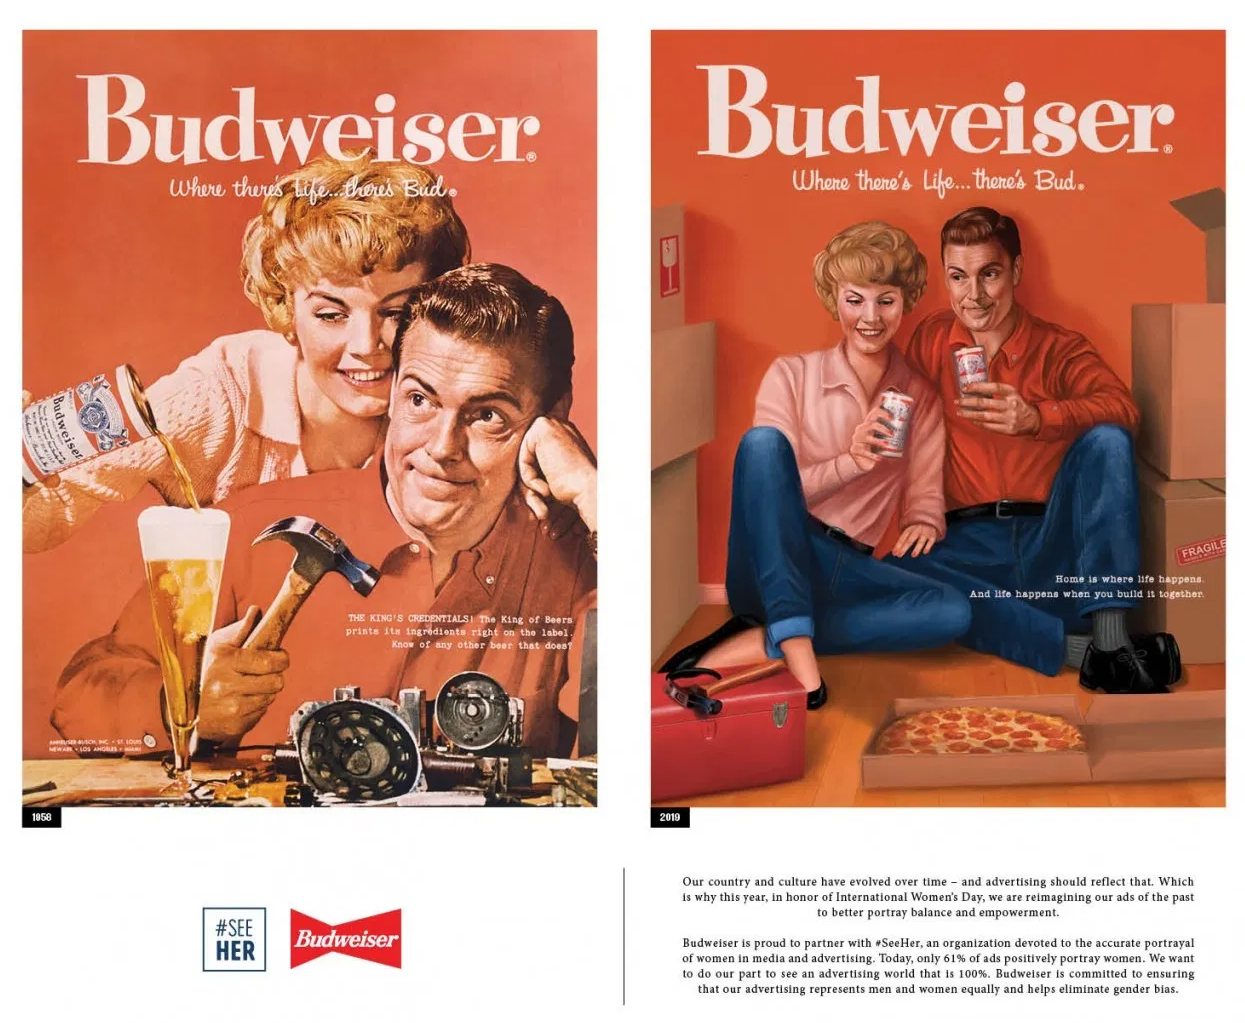 Two Budweiser ads side by side: the first with a woman pouring a man a beer as he works on fixing a device, and the second with both of them holding beers and surrounded by moving boxes.